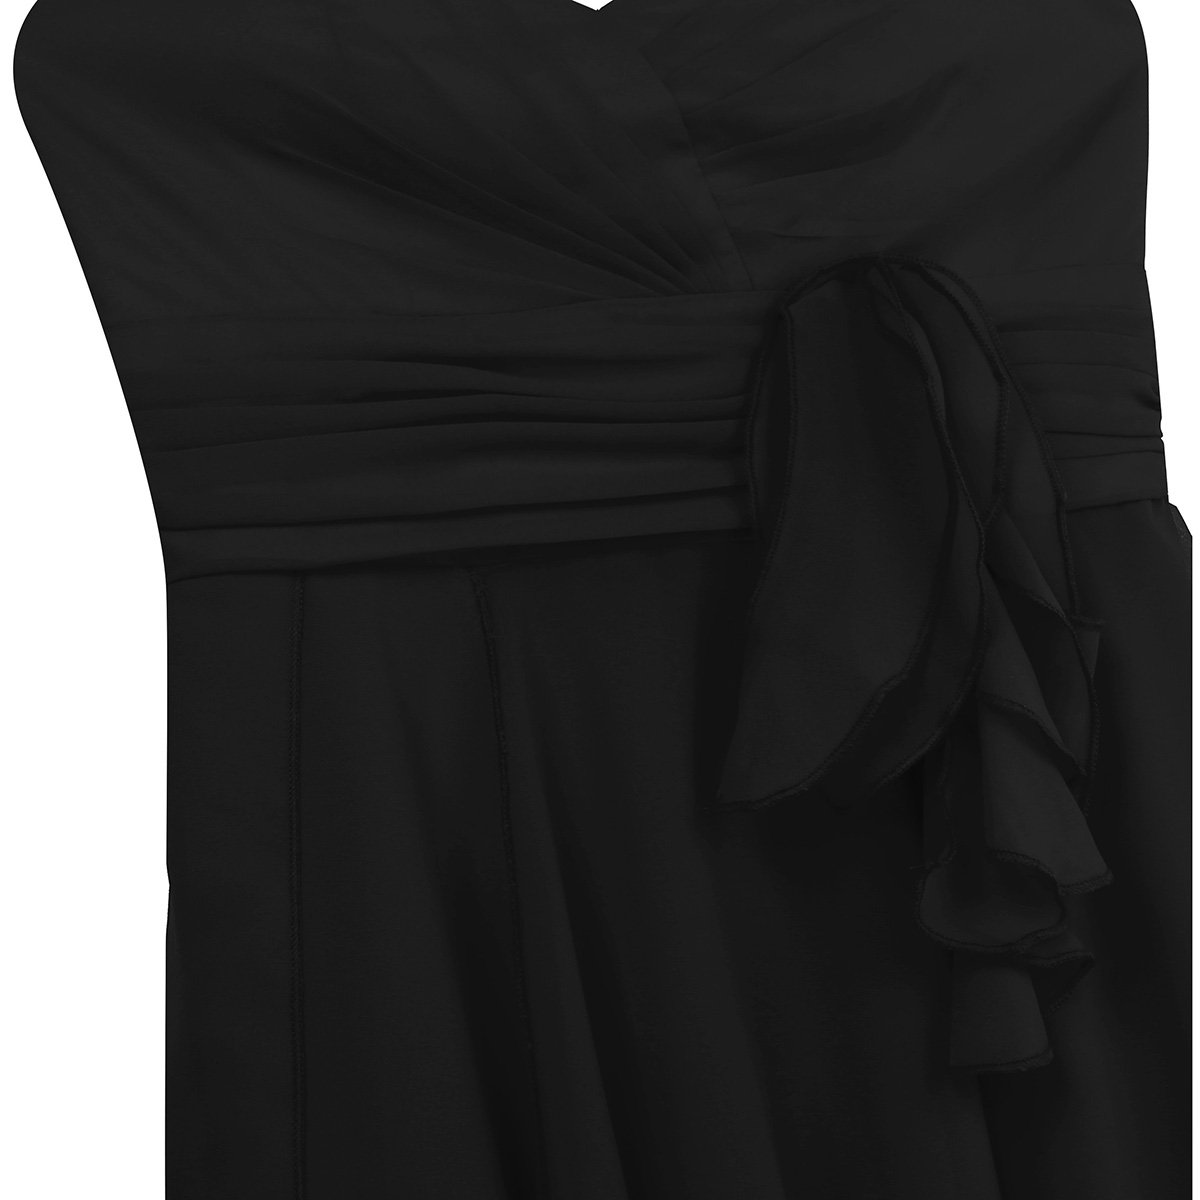 iiniim Womens Chiffon Sweetheart Strapless High-Low Pleated Bridesmaid Dress Party Evening Prom Gown